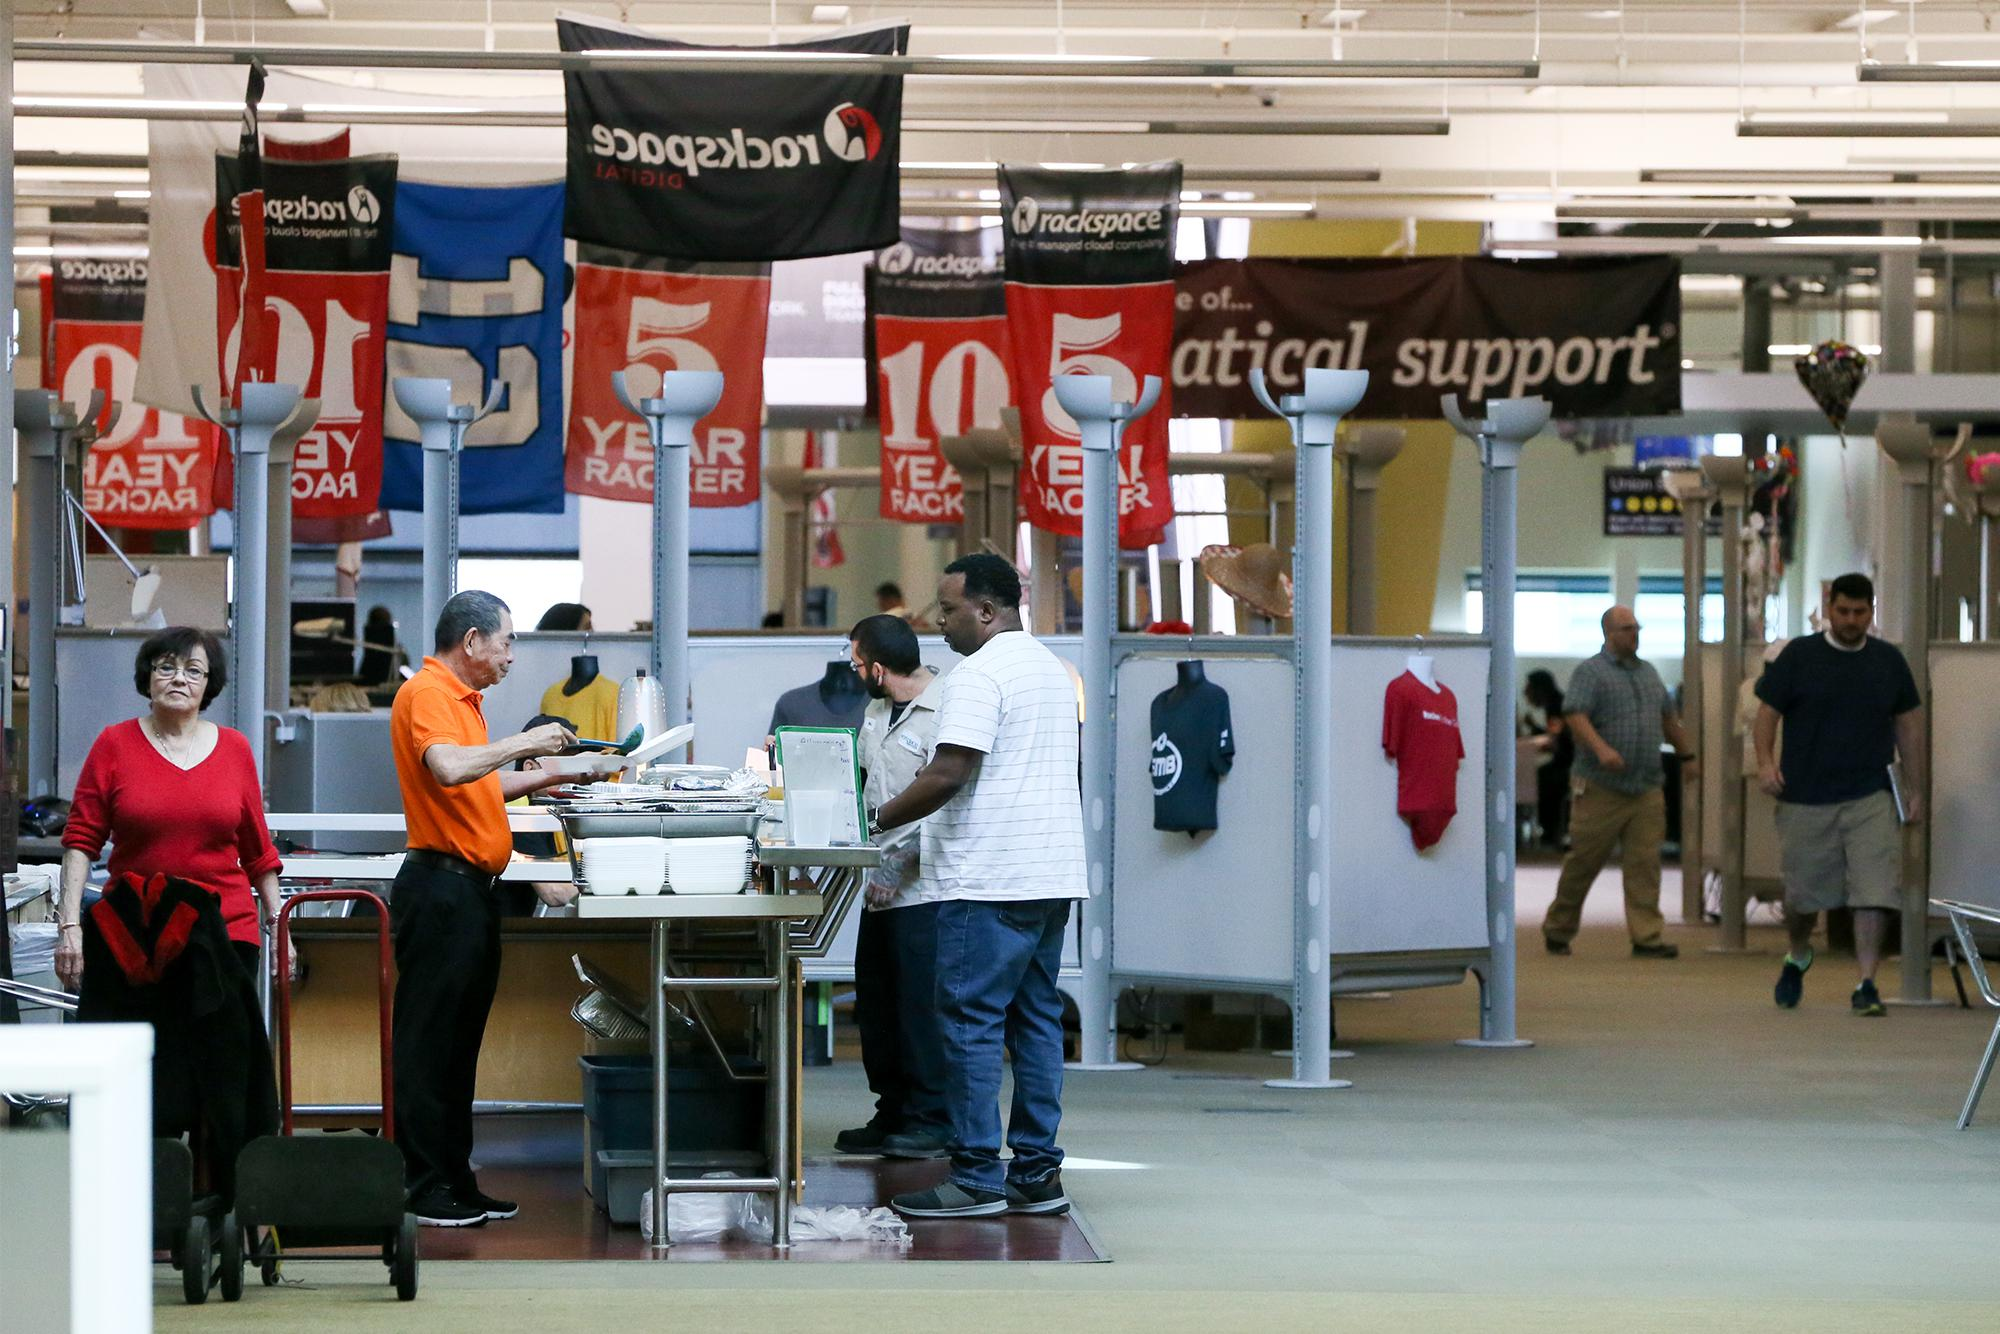 For the first time, Rackspace is subleasing space at its HQ